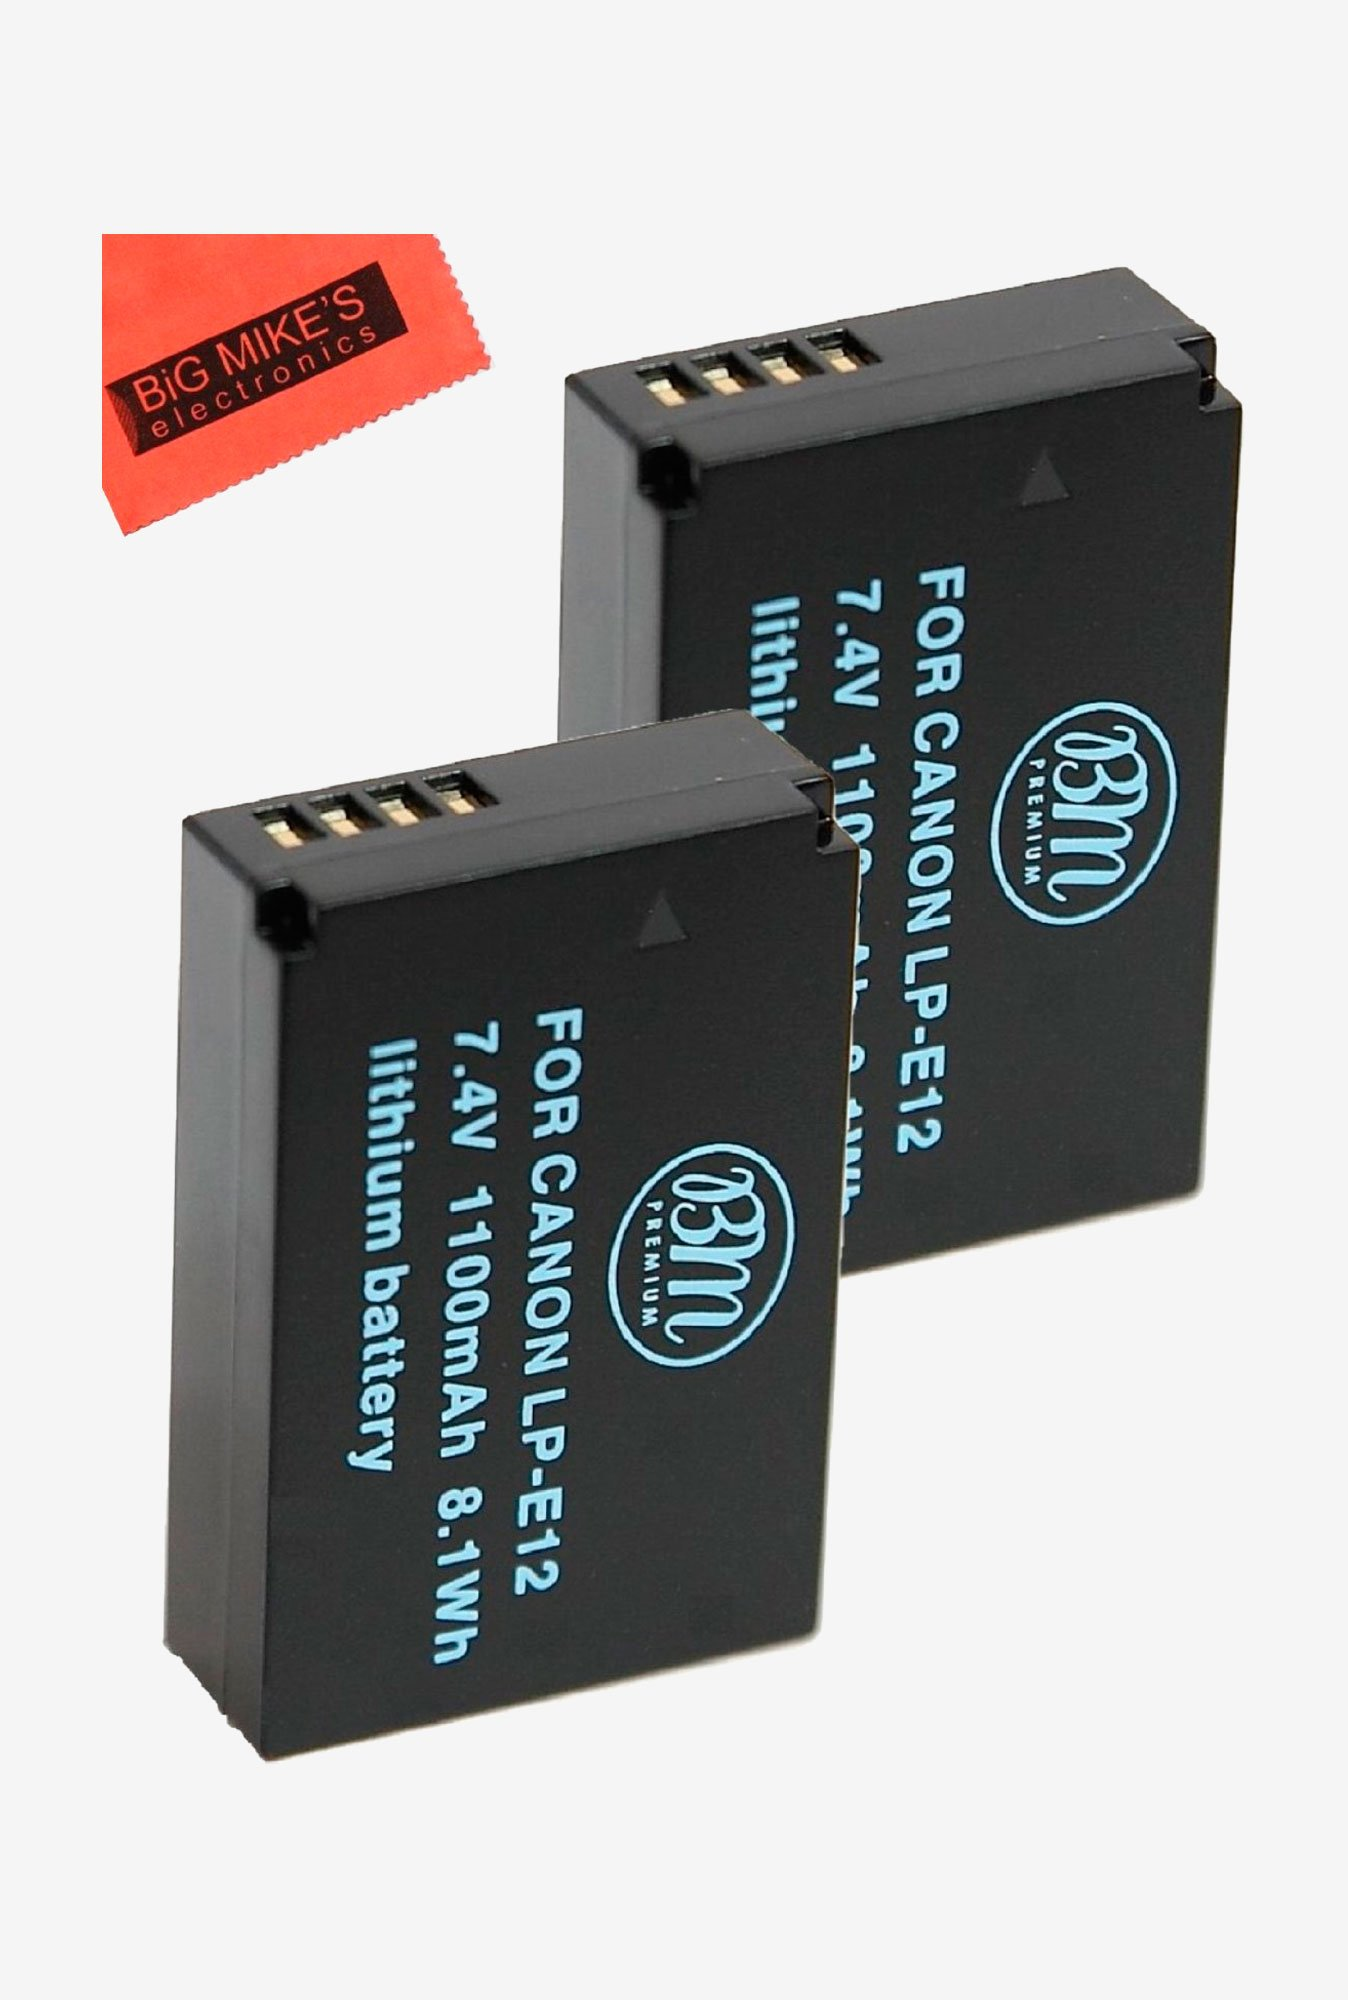 Lp-E12 Replacmenet Batteries For Canon Rebel Sl1, Eos-M Mirrorless Digital Camera + More - Pack Of 2